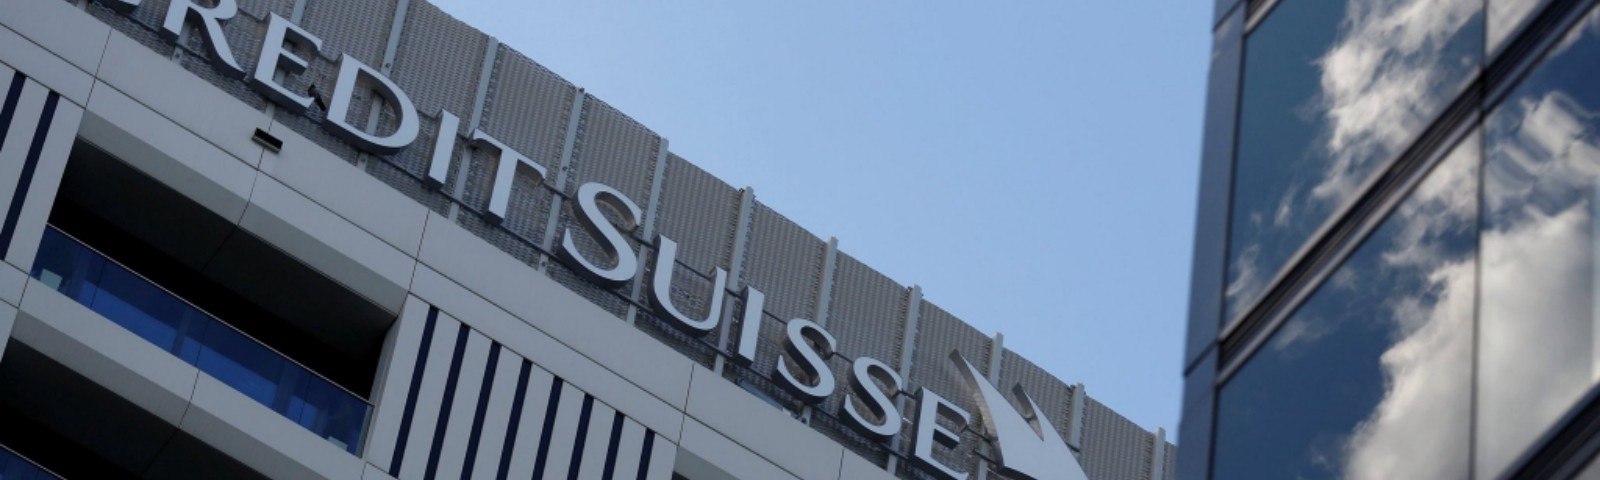 Credit Suisse executives agree 40% cut to their bonuses